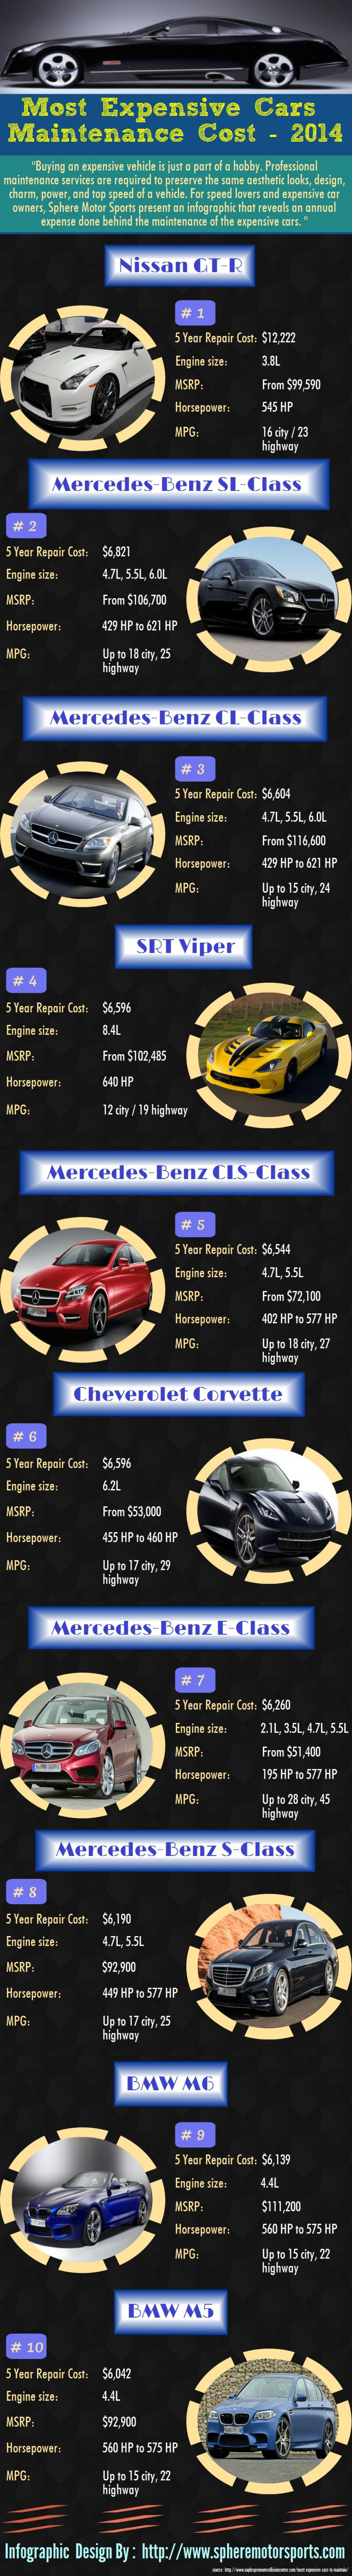 Most Expensive Cars Maintenance Cost - 2014 Infographic